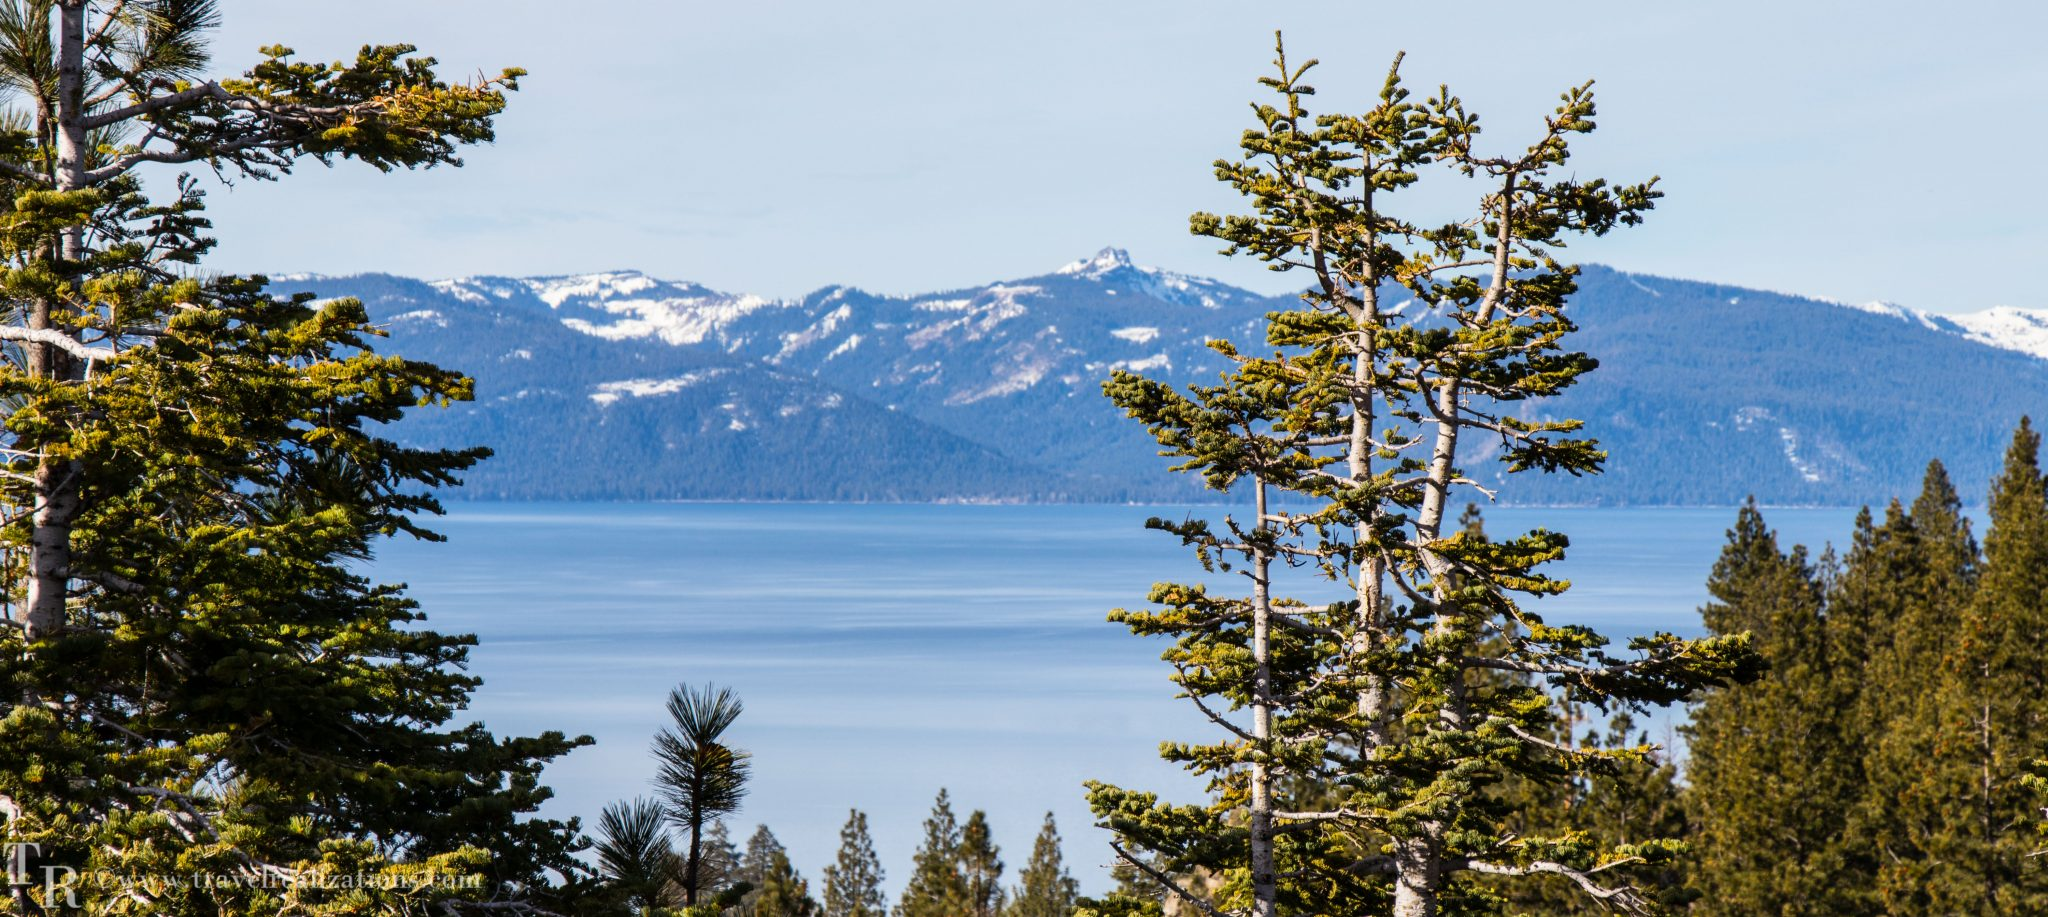 Lake Tahoe, the largest alpine lake in North America!